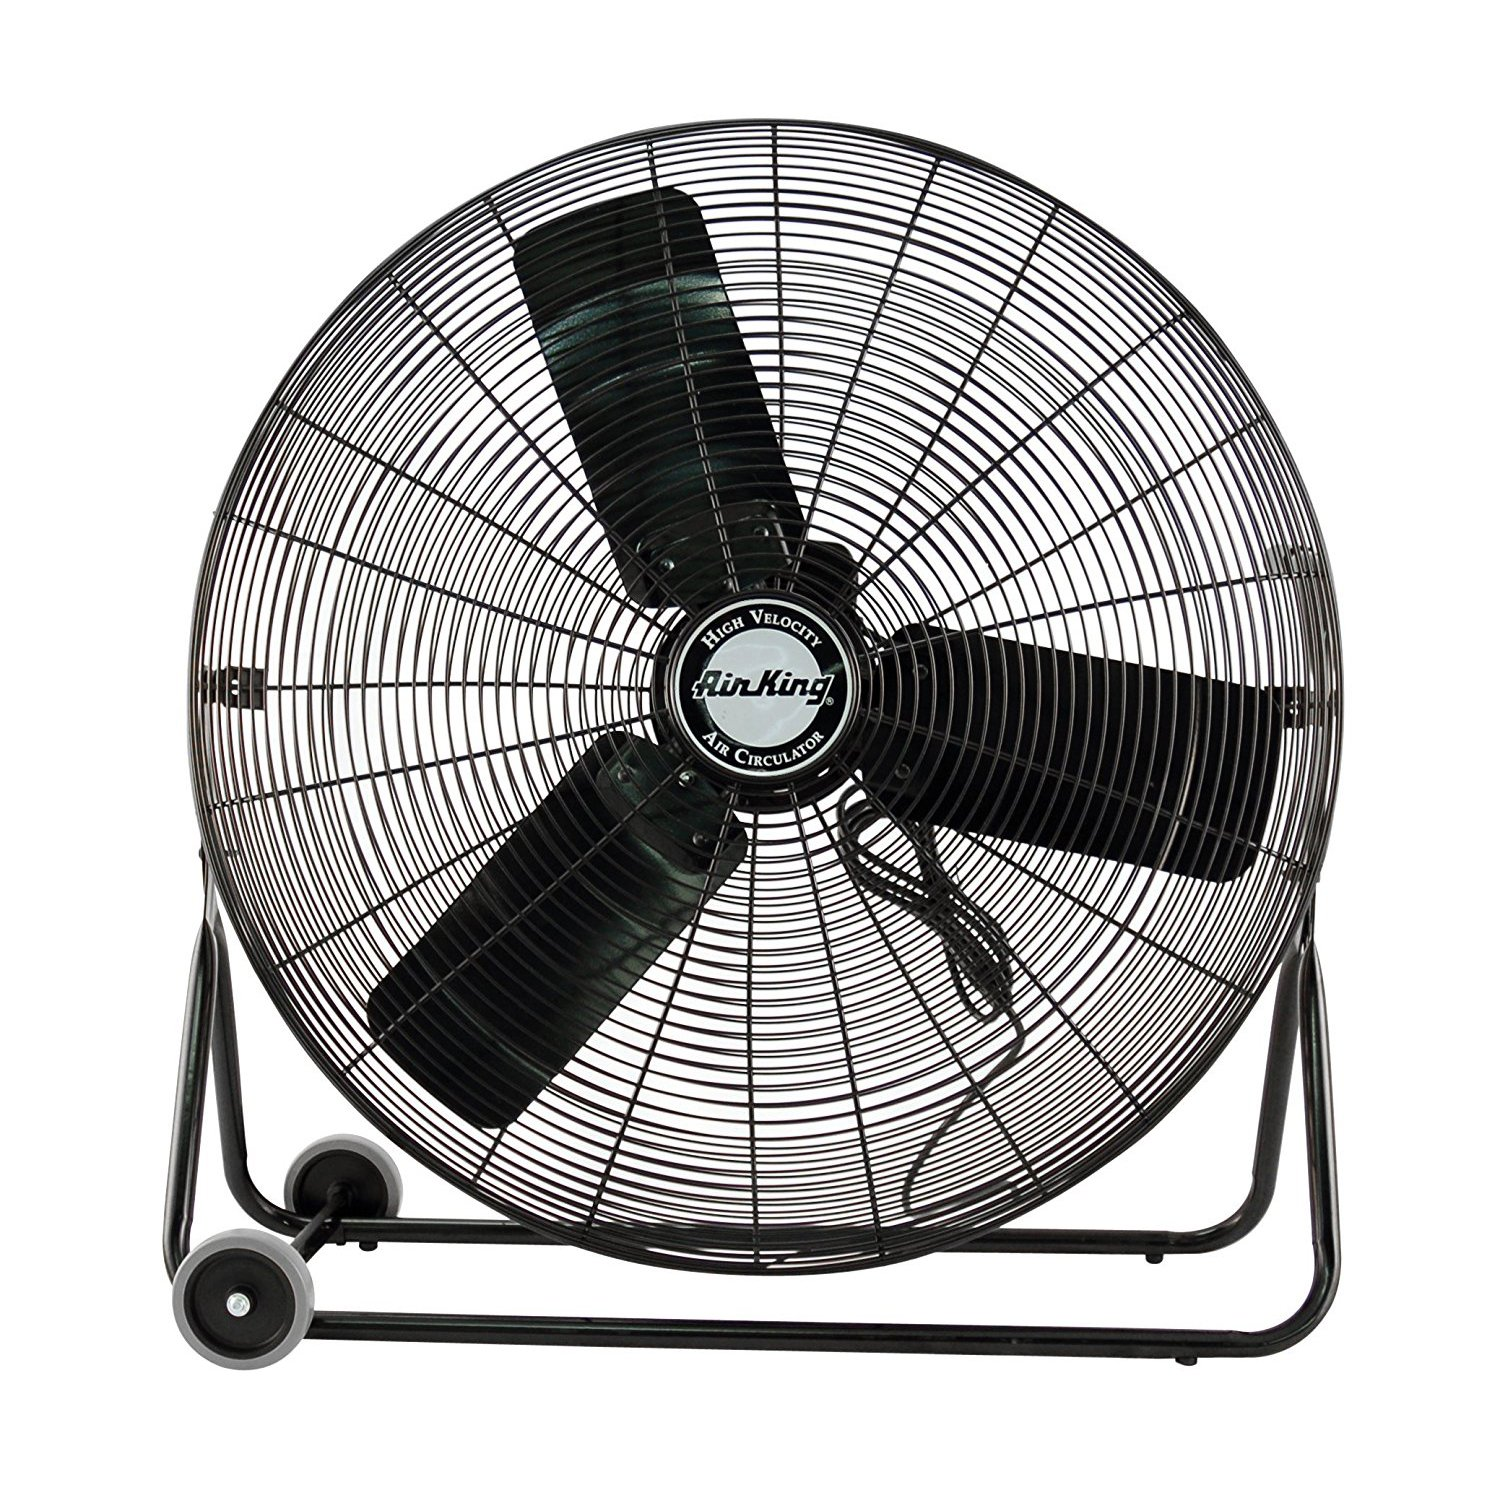 Air King 3 Speed 1/4 HP 120 Volt 30 Inch Enclosed Pivoting Floor Fan | 9230